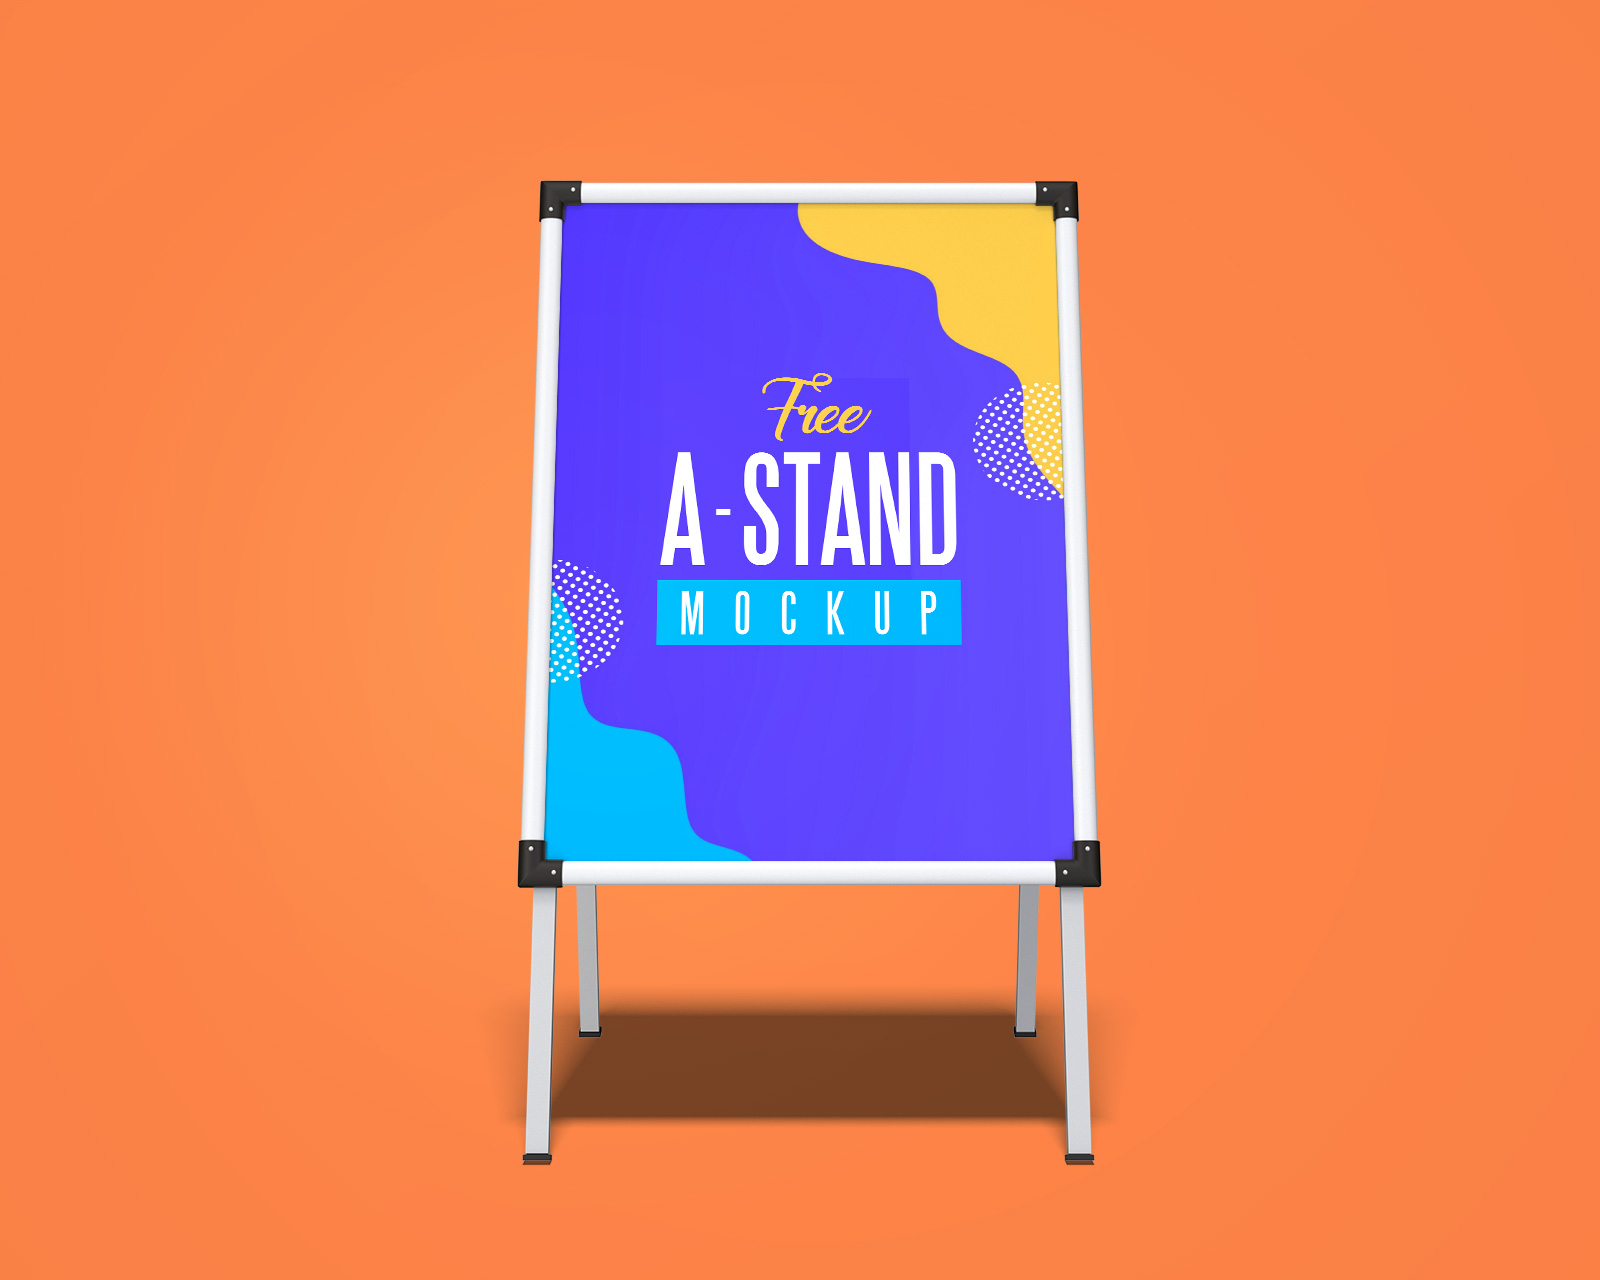 Free-Outdoor-Advertising-A-Stand-Mockup-PSD-Set